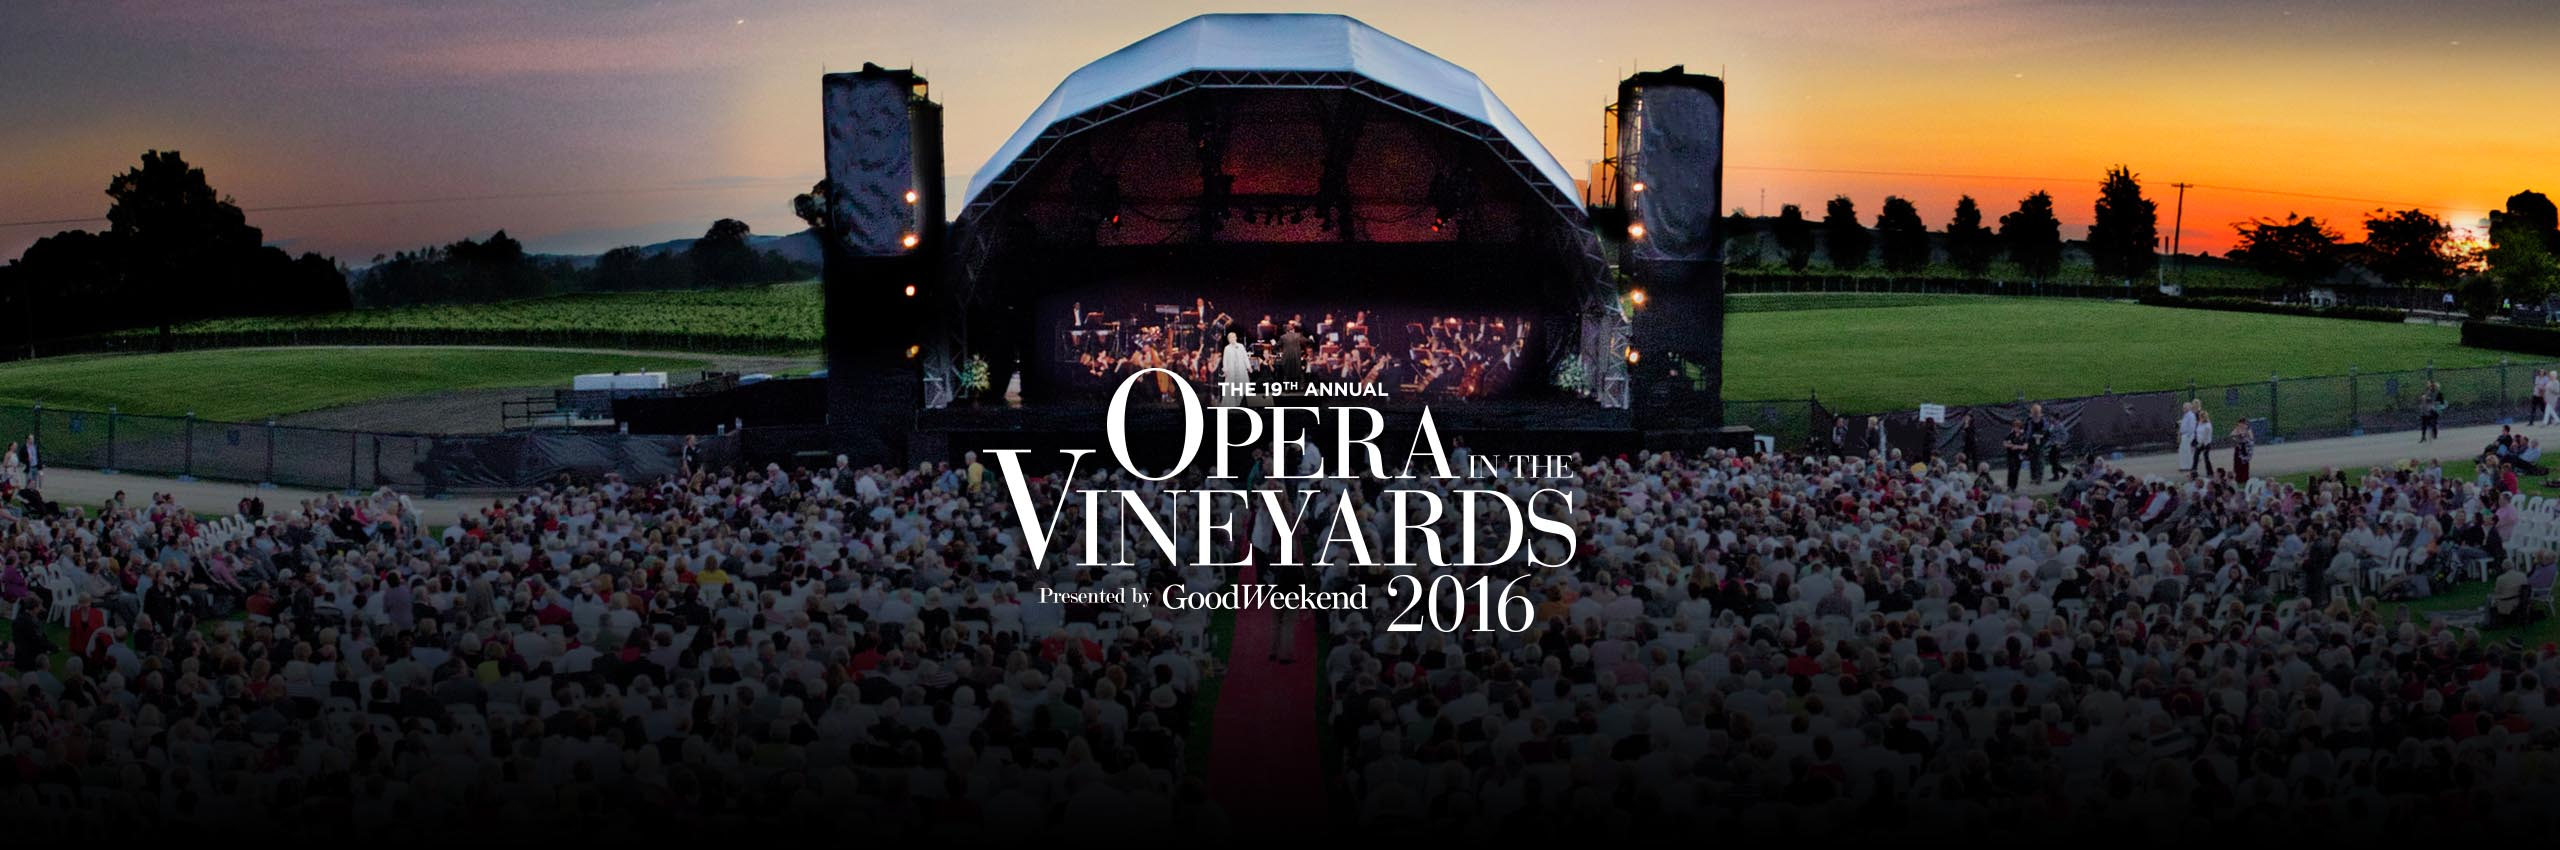 opera-in-the-vineyards